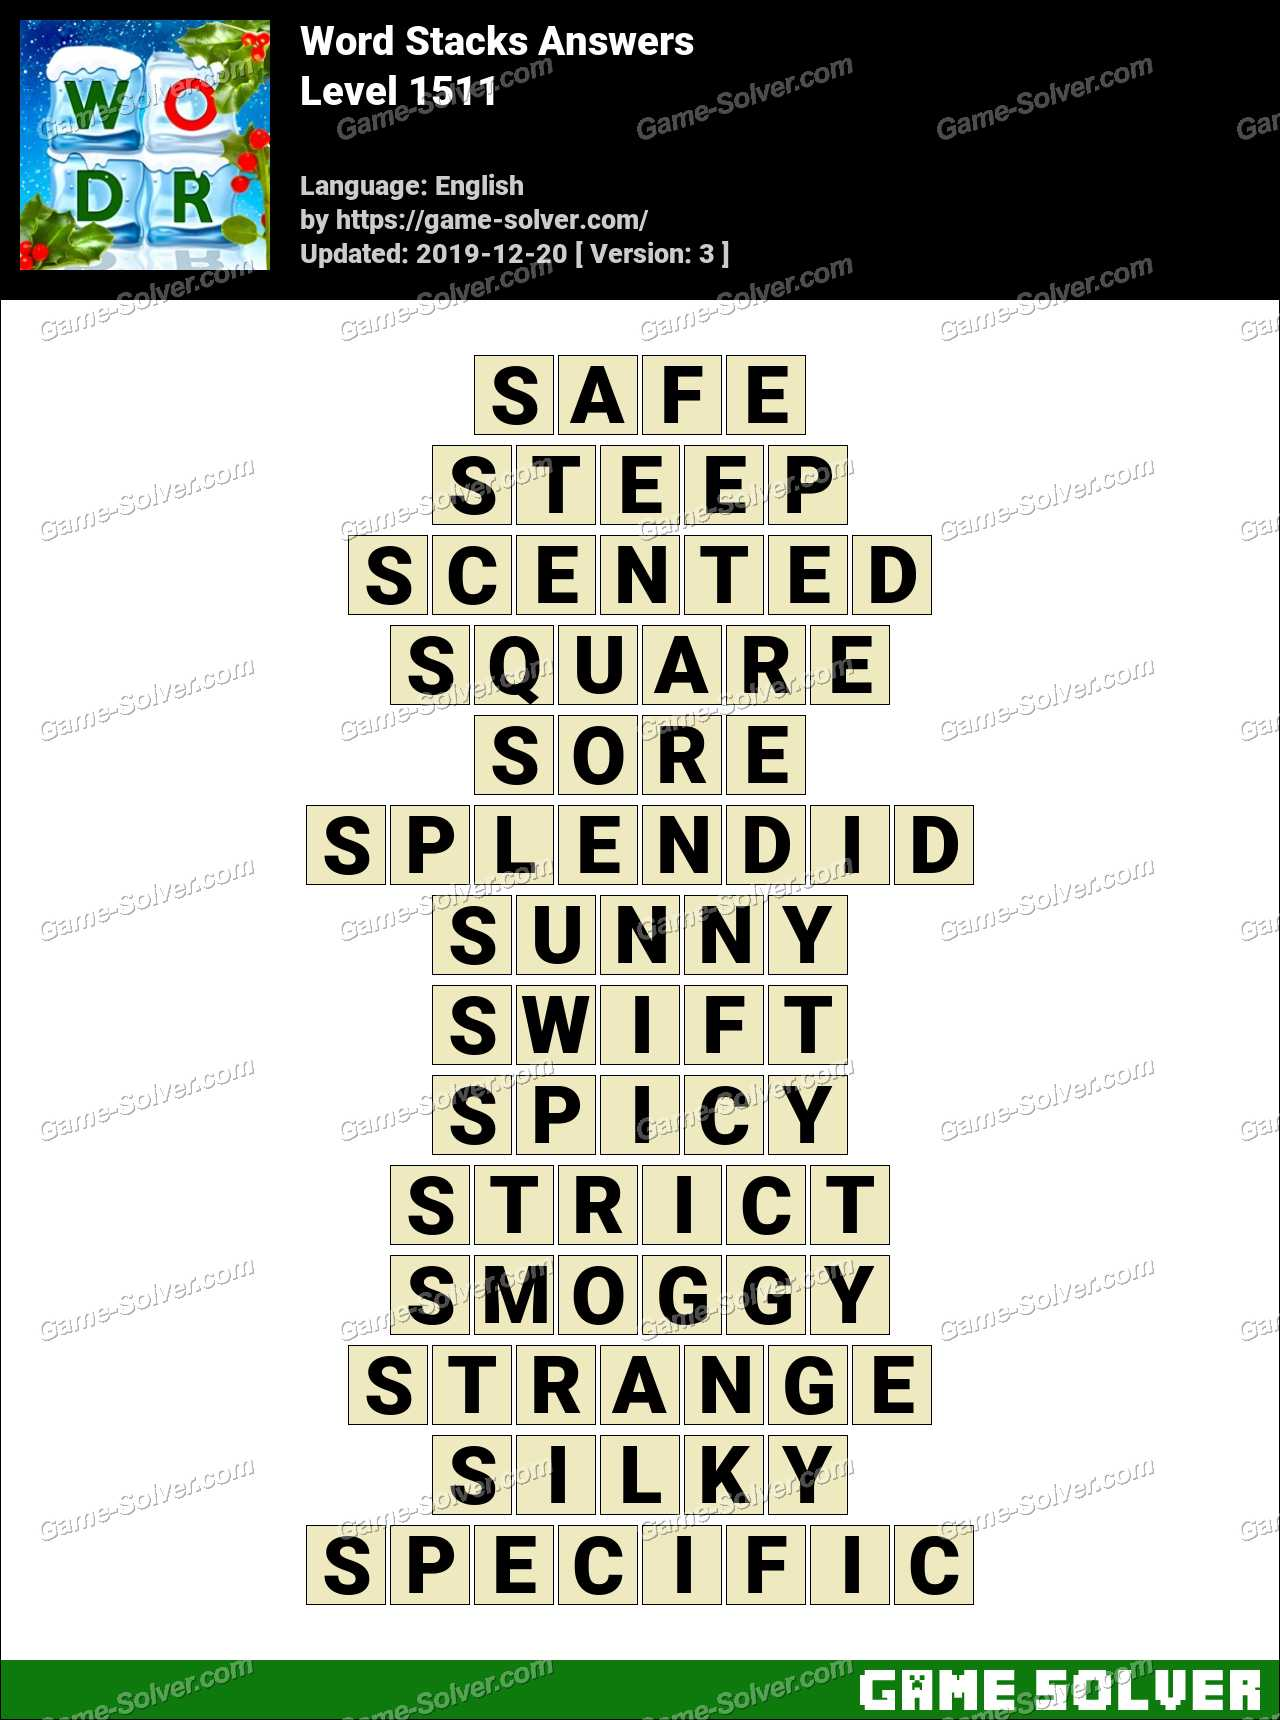 Word Stacks Level 1511 Answers